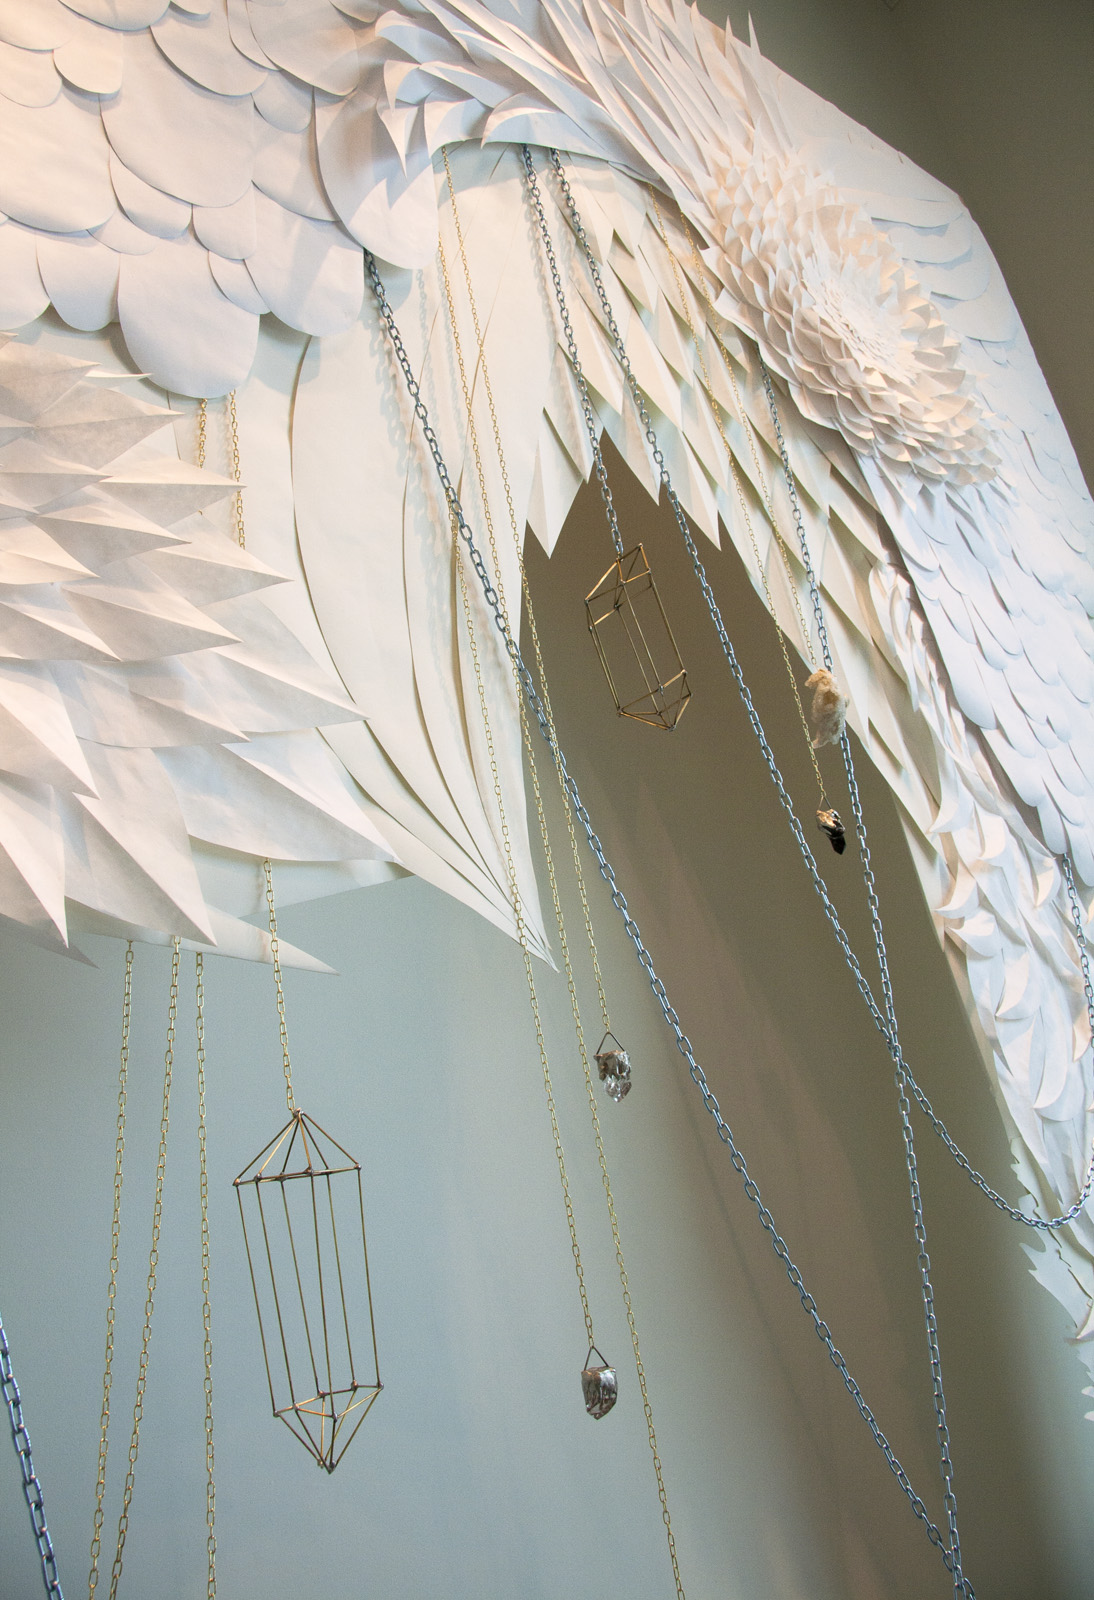 RitesOfPassage-Installation-Detail02.jpg